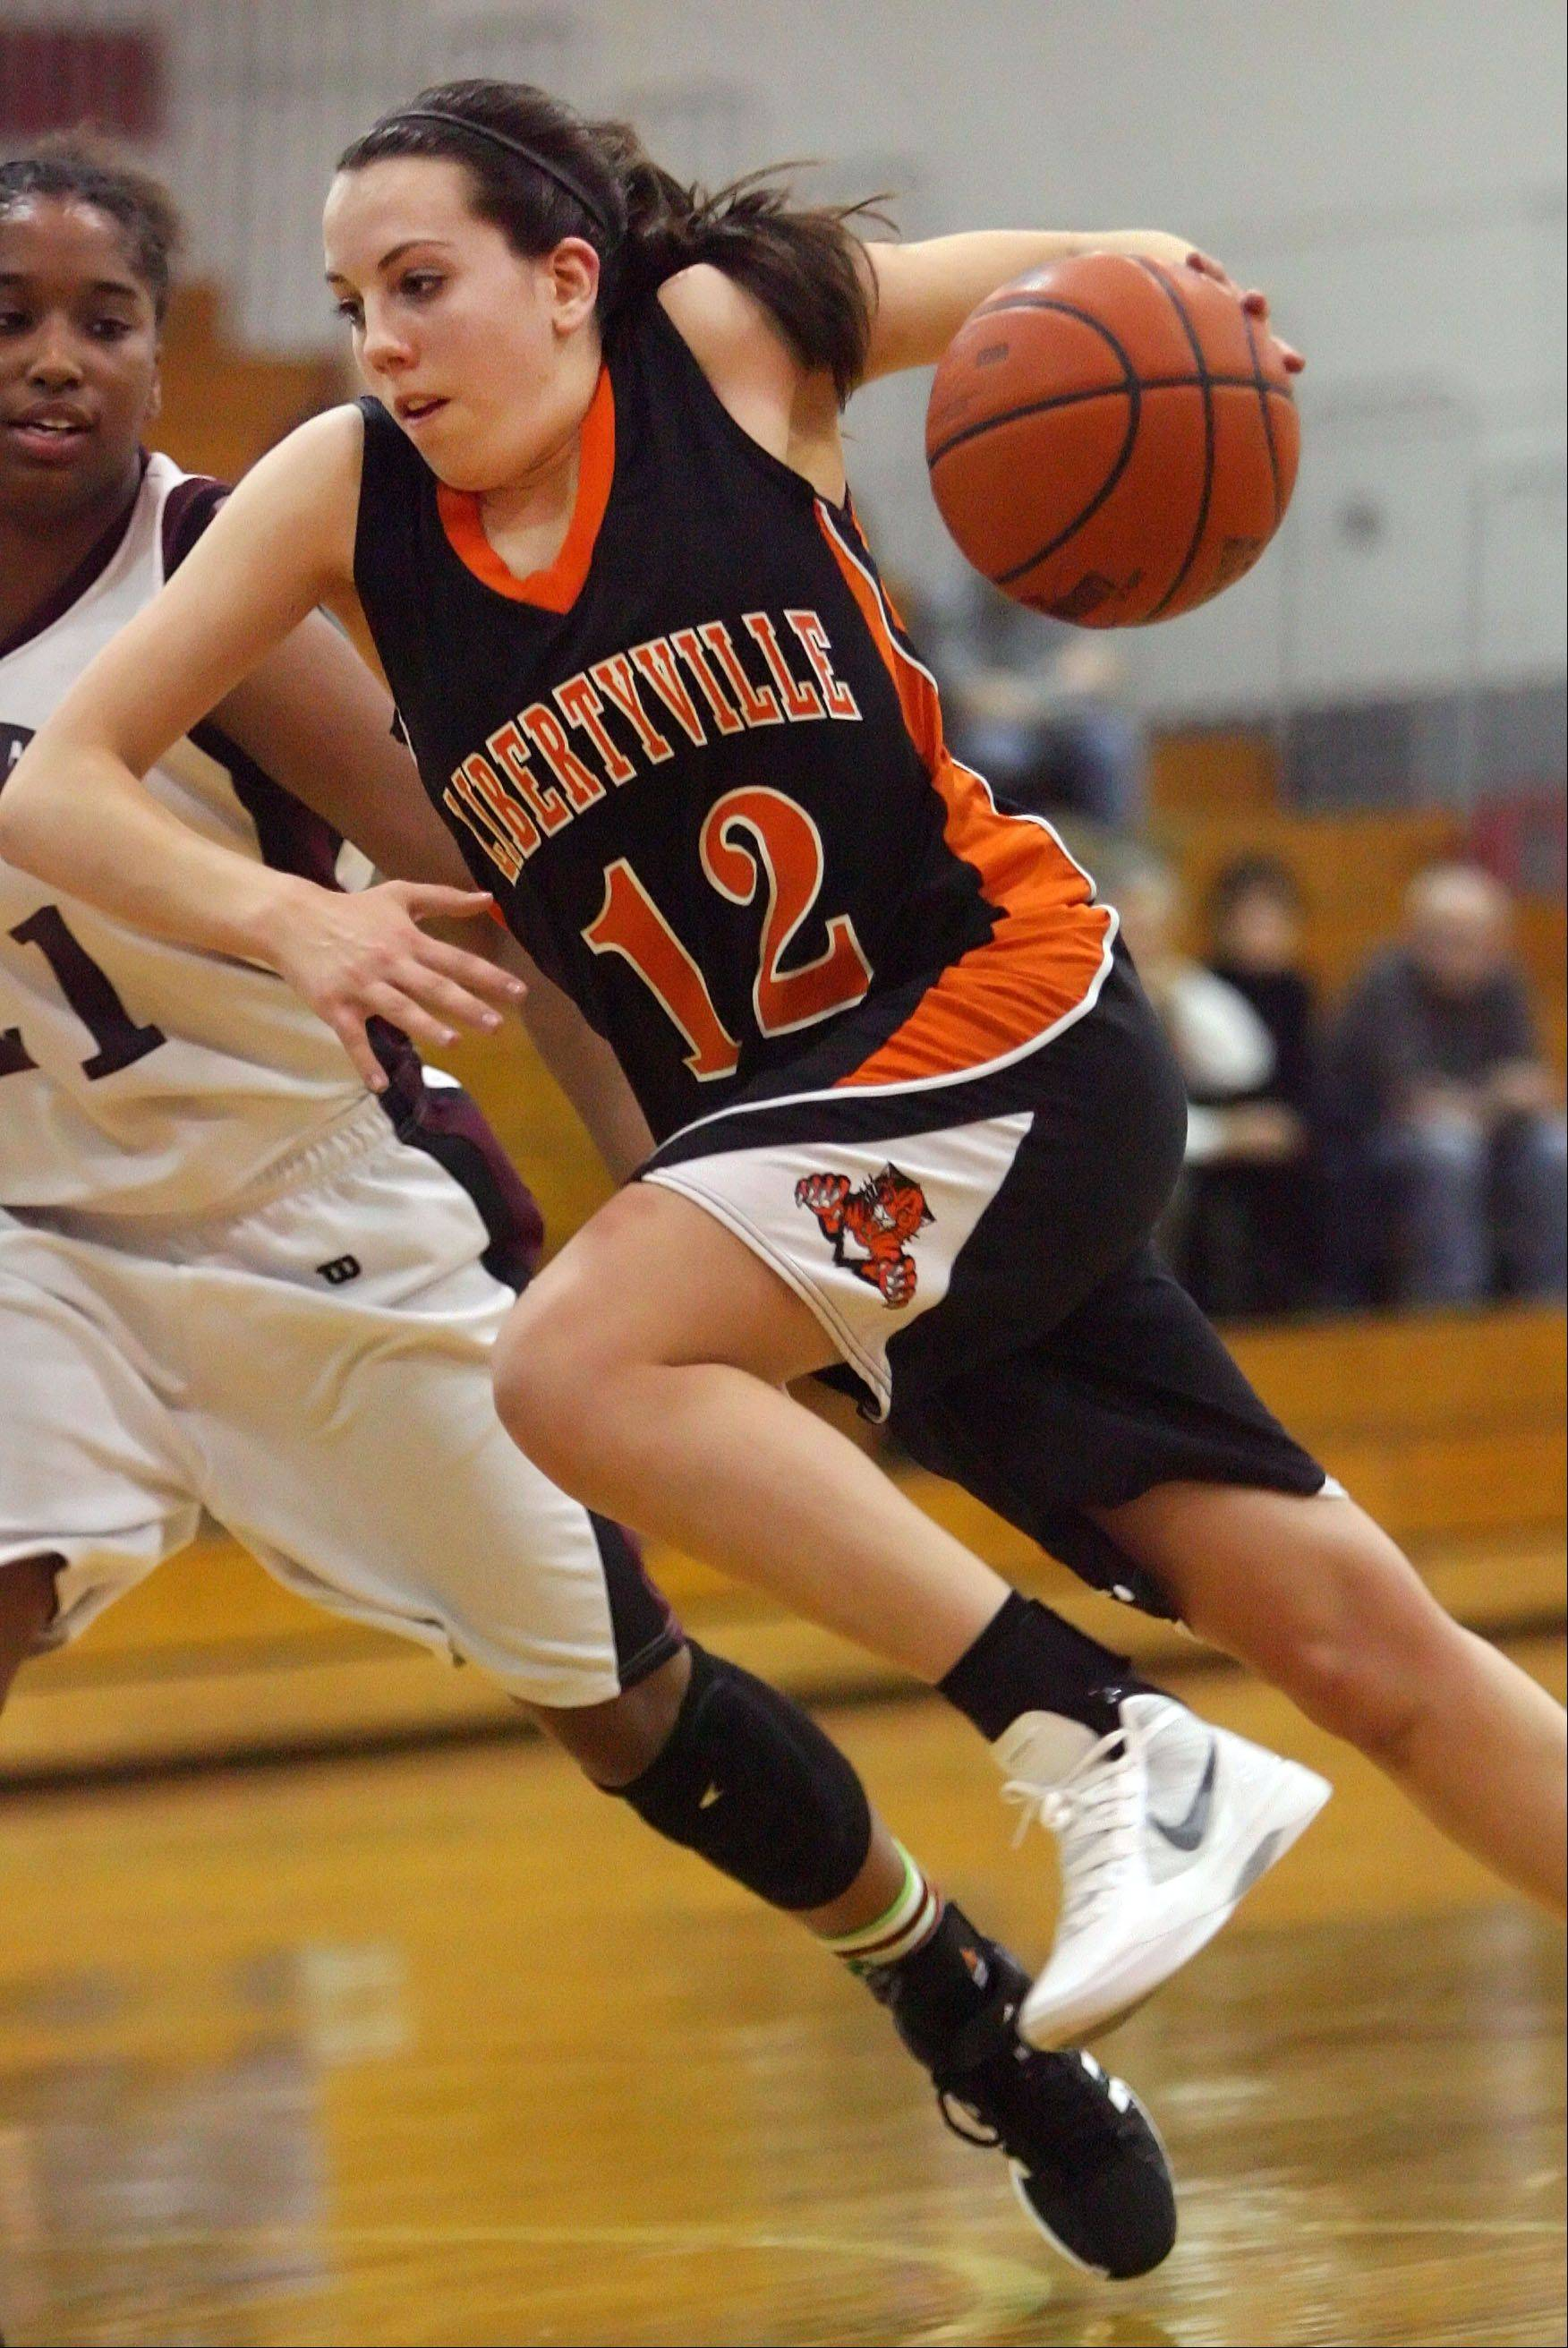 Libertyville's Olivia Mayer, right, drives on Zion-Benton's Samantha Rodriguez.